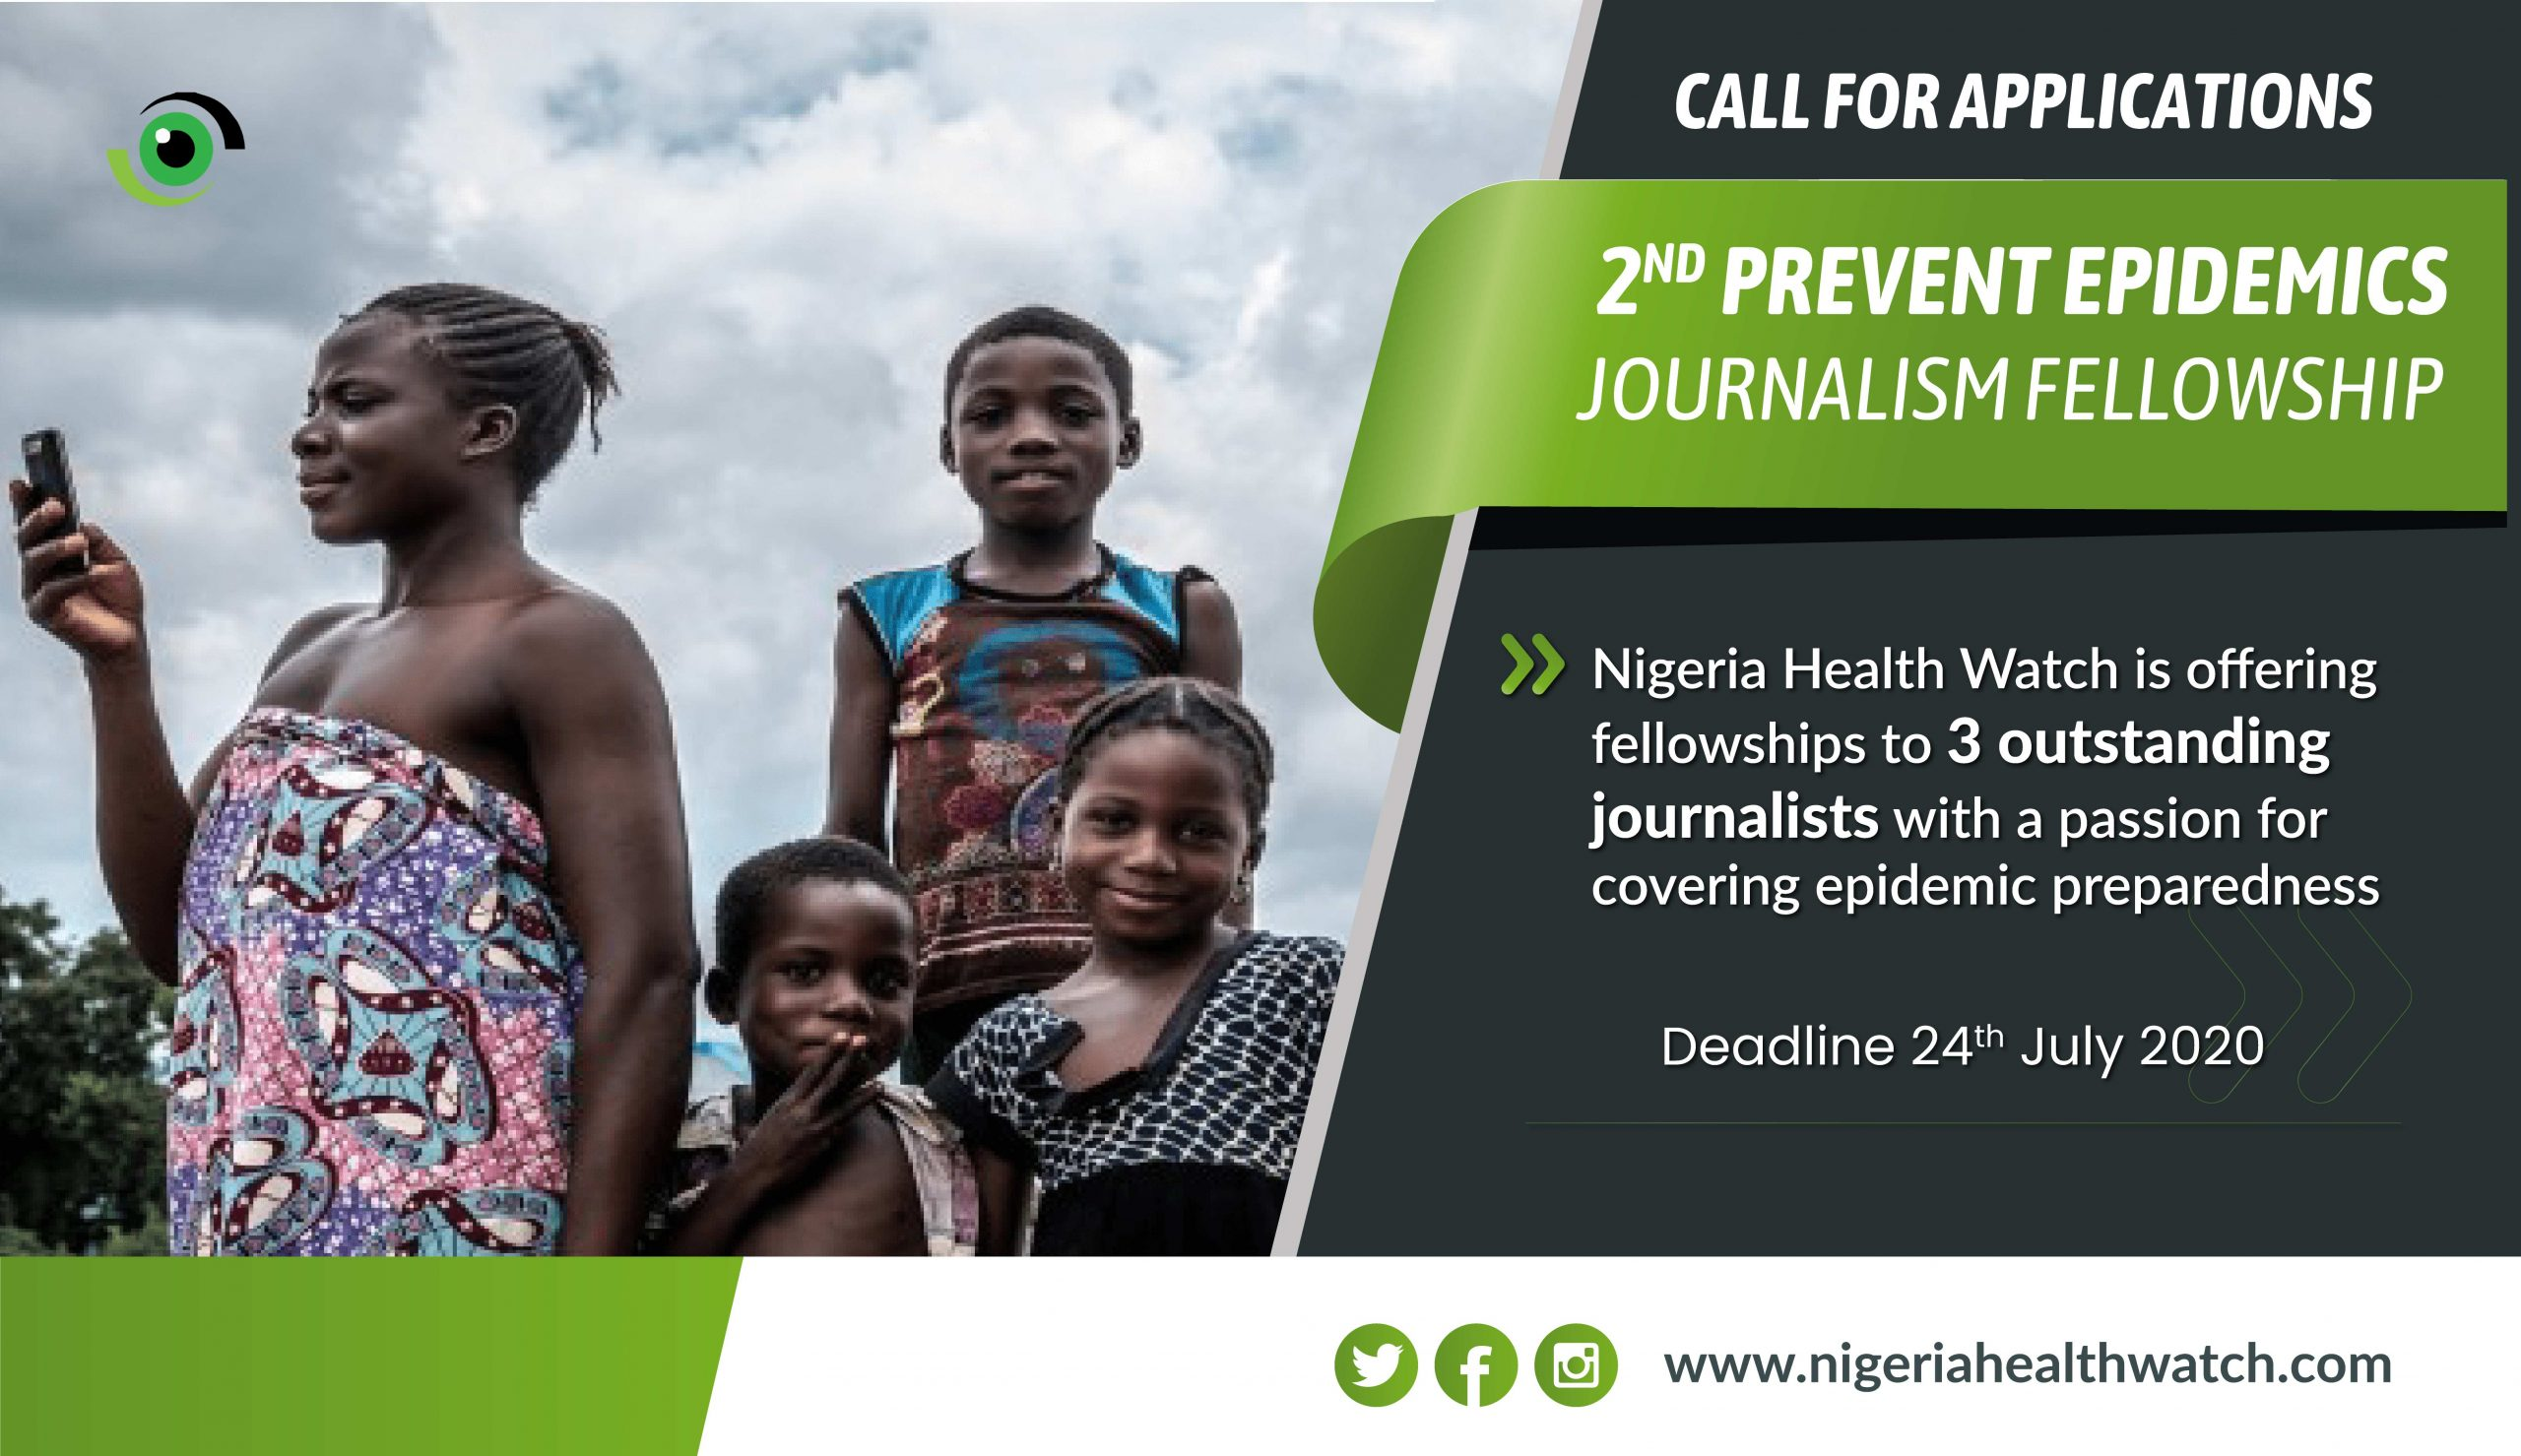 Call For Applications: 2nd Prevent Epidemics Journalism Fellowship - Nigeria Health Watch